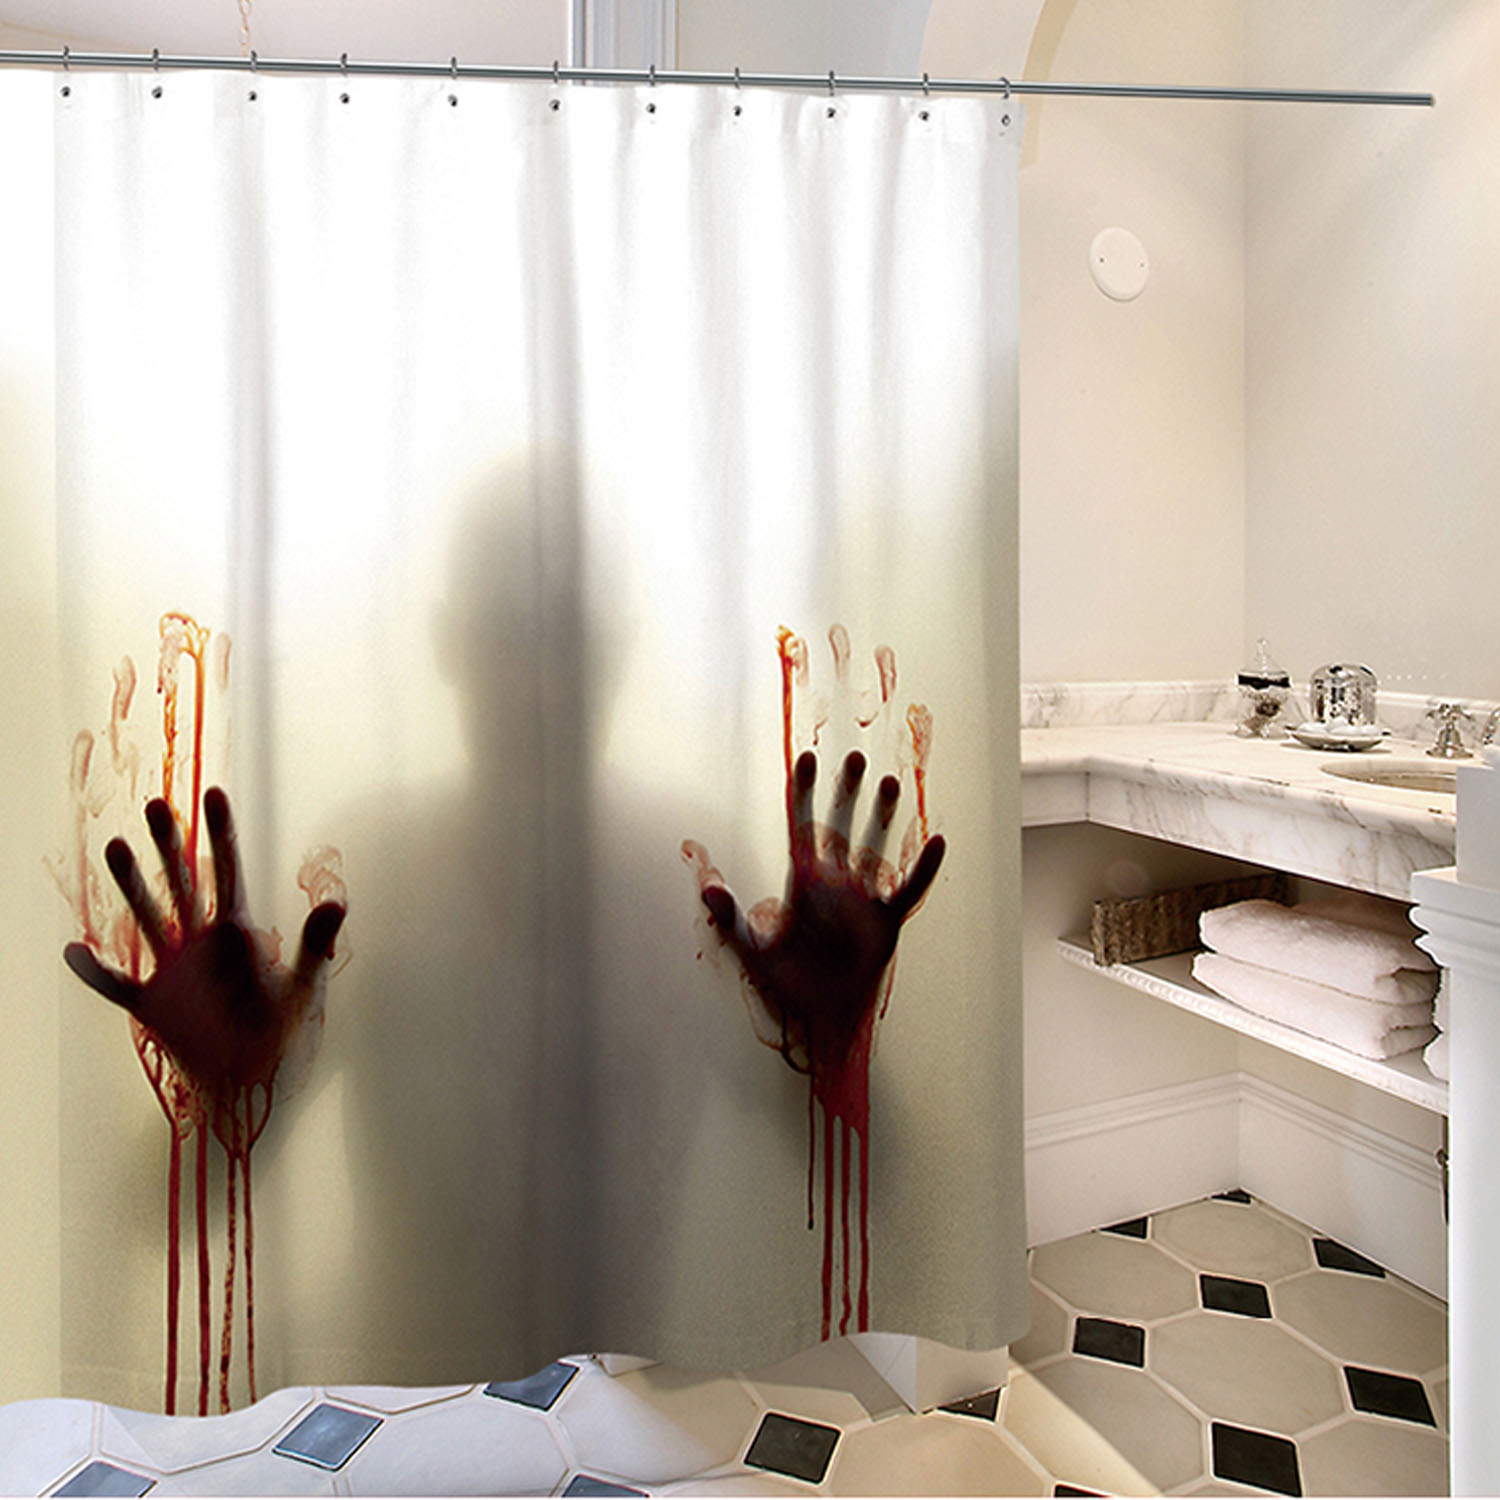 Us 11 14 25 Off Behogar Halloween Scary Shadow Bloody Hands Waterproof Bathroom Shower Curtain With 12 Curtain Hooks 1 8 X 1 8m In Party Diy